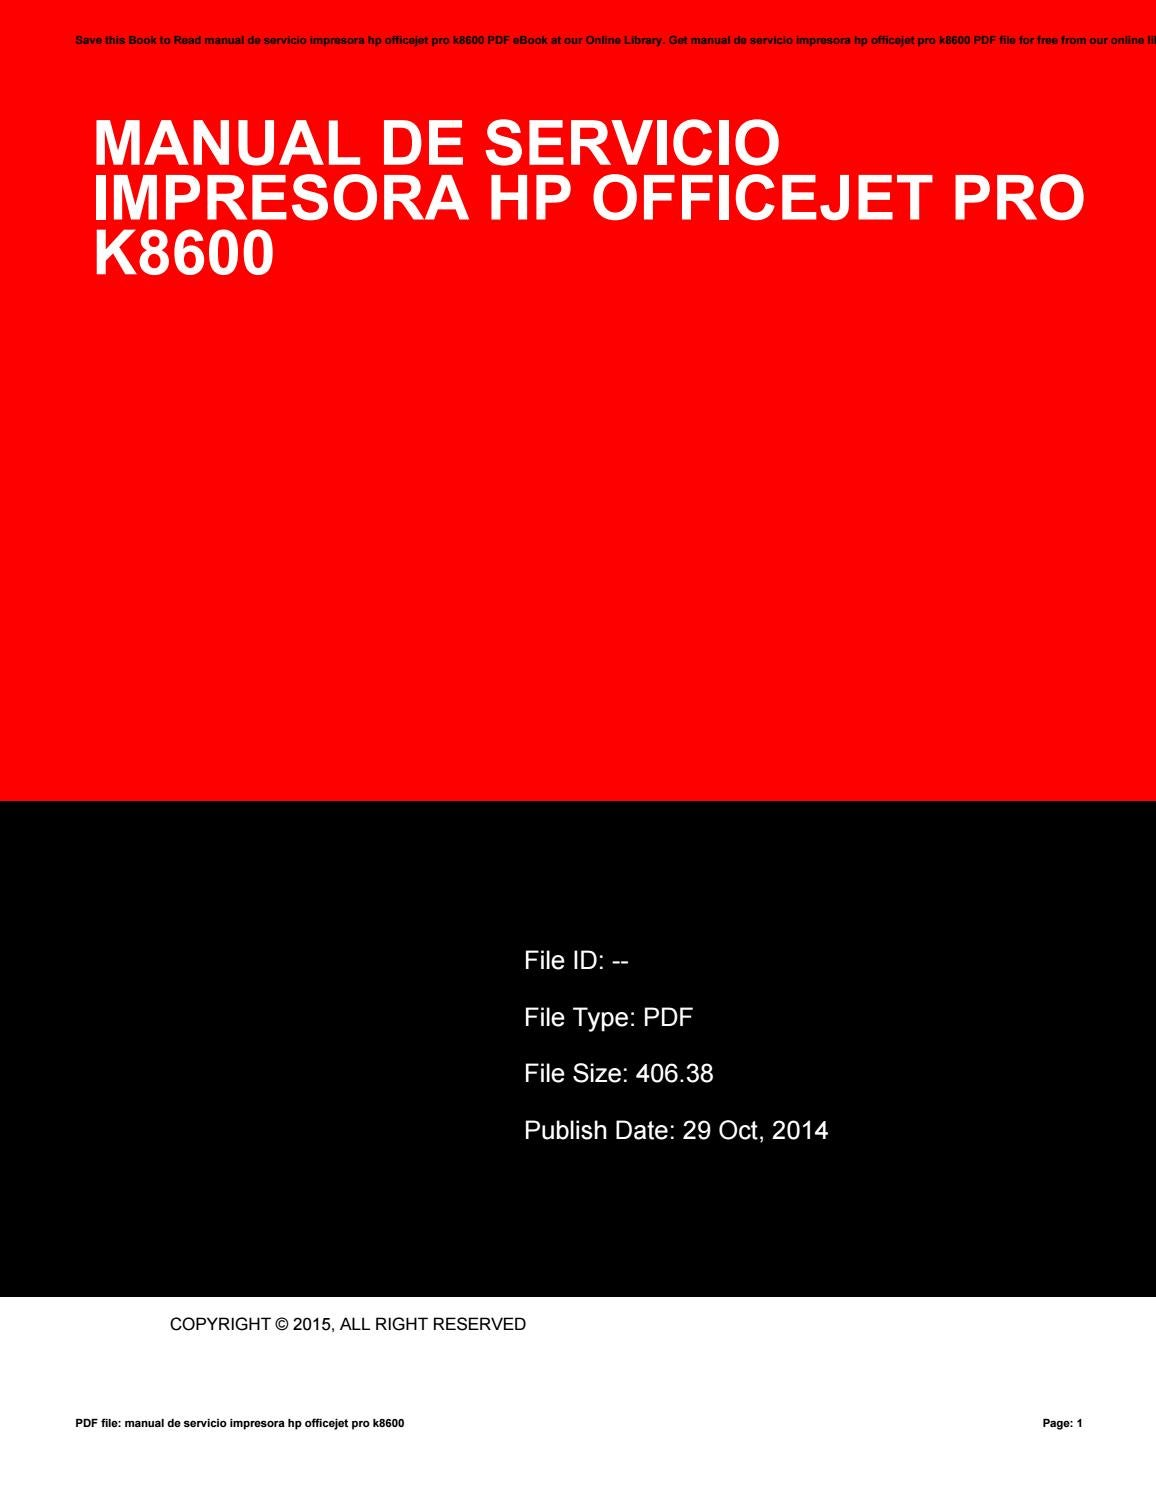 hp officejet pro k8600 troubleshooting manual